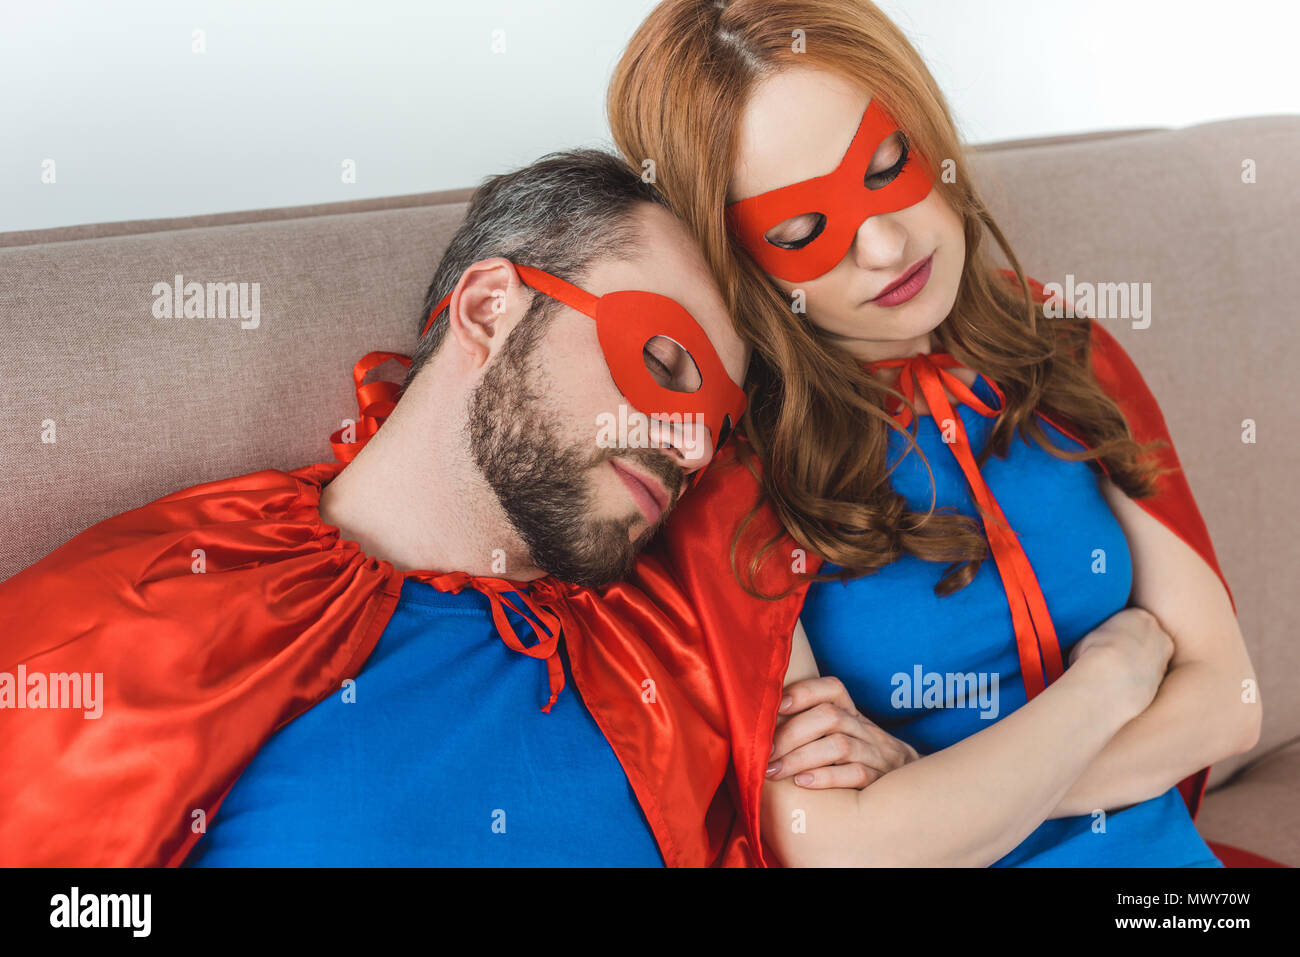 couple of superheroes in masks and cloaks sleeping together on couch